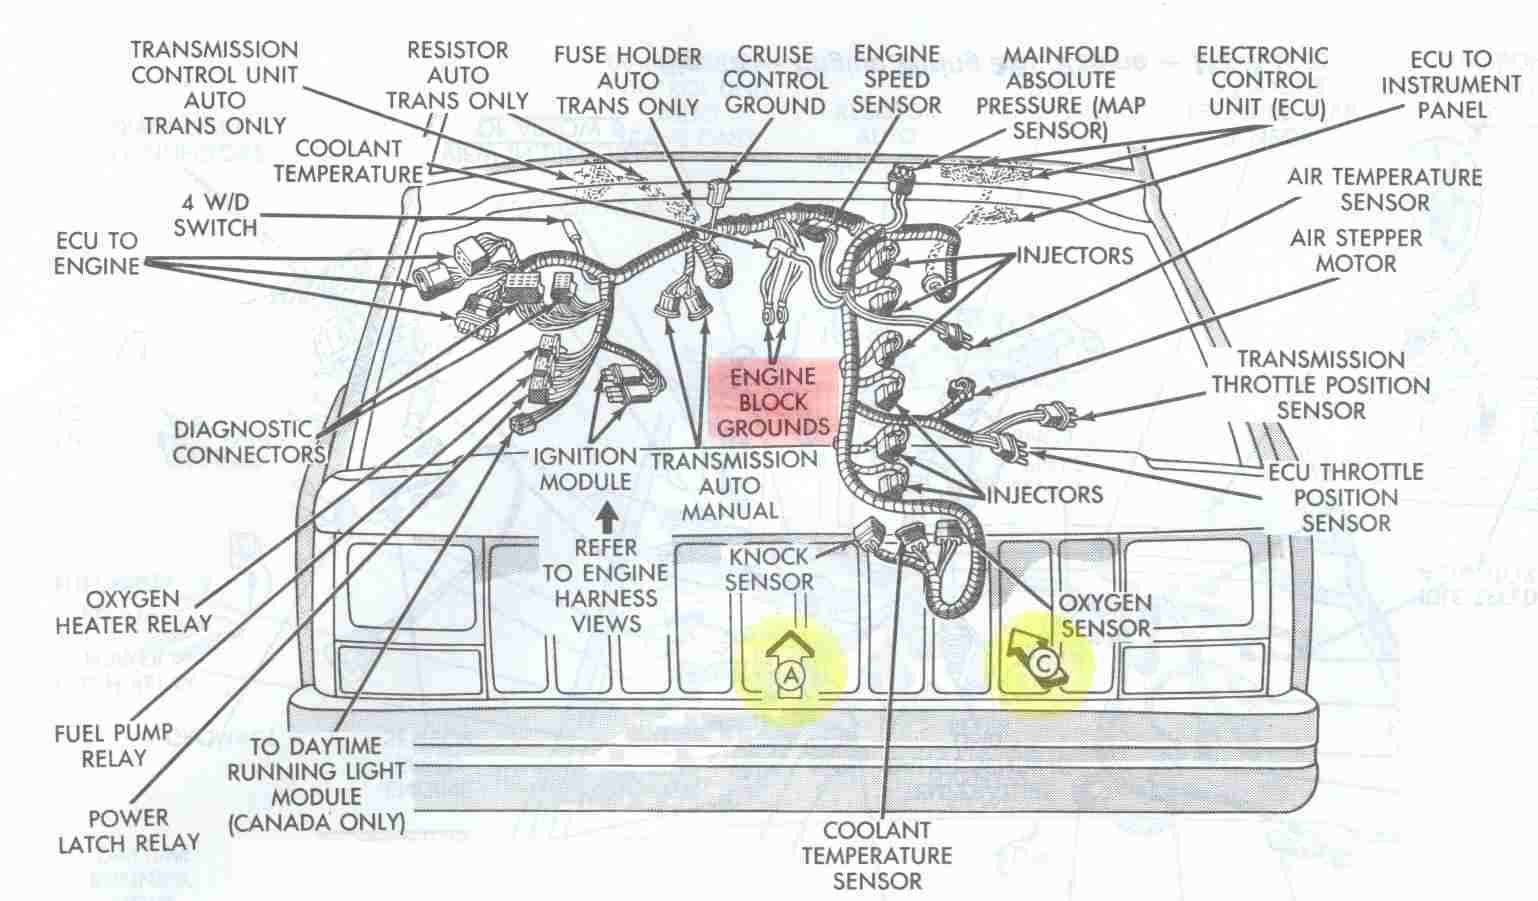 ab0134a7d9e021431187af597eb4aeca engine bay schematic showing major electrical ground points for 89 jeep cherokee wiring diagram at bakdesigns.co